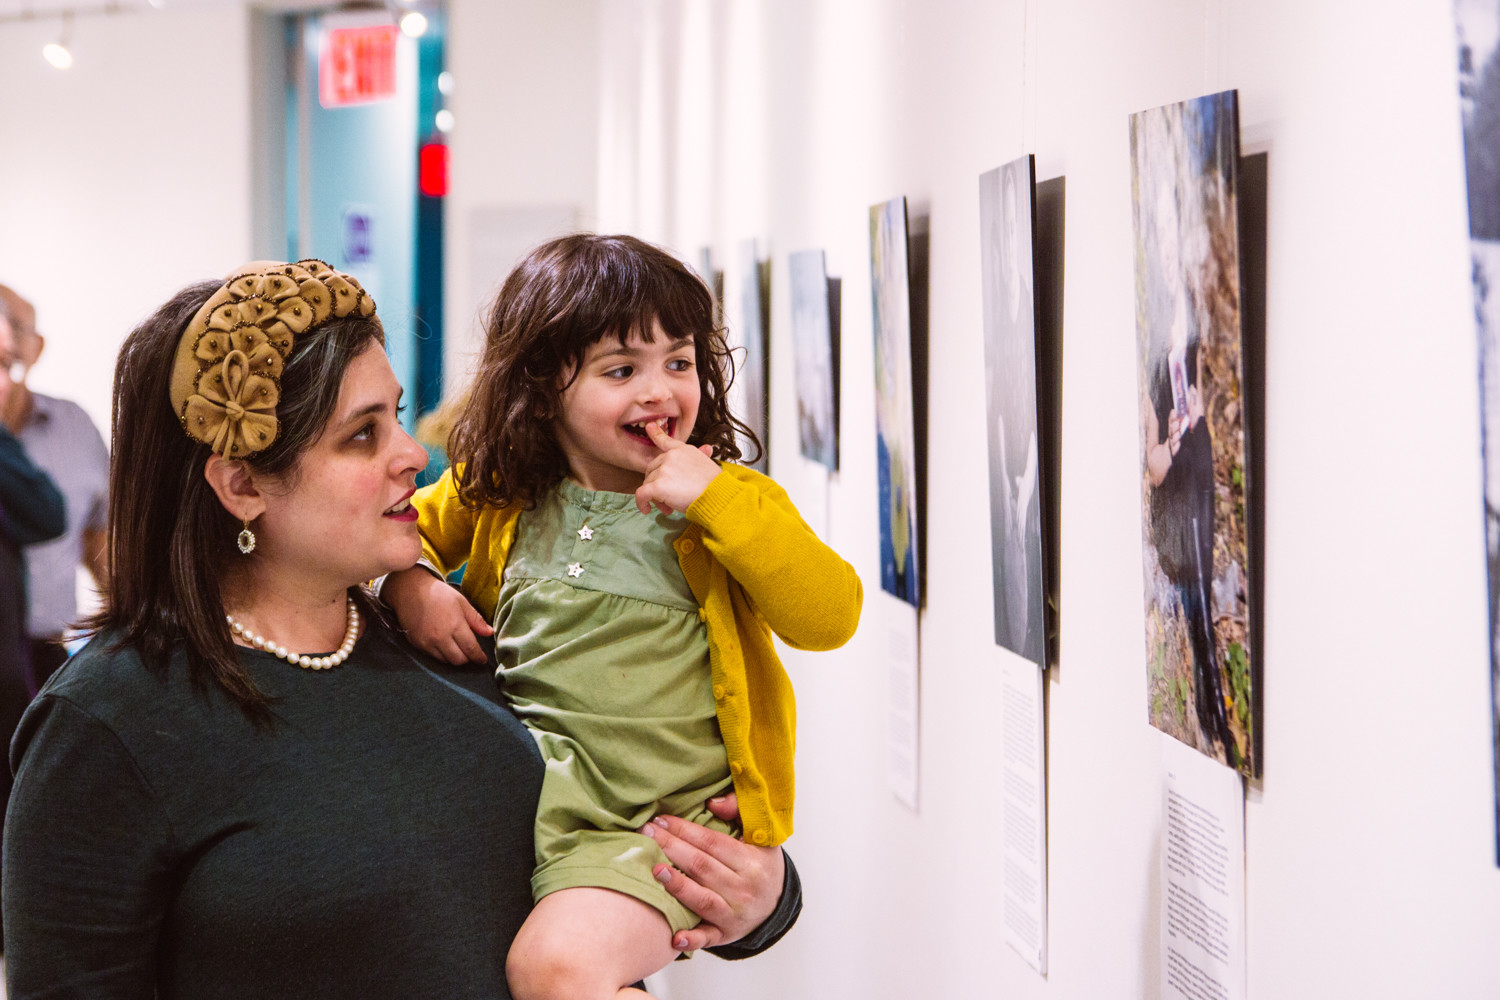 Aviva Braun and her daughter look at images in her exhibition 'The Embodyment of Jewish Femininity' at The Riverdale Y.